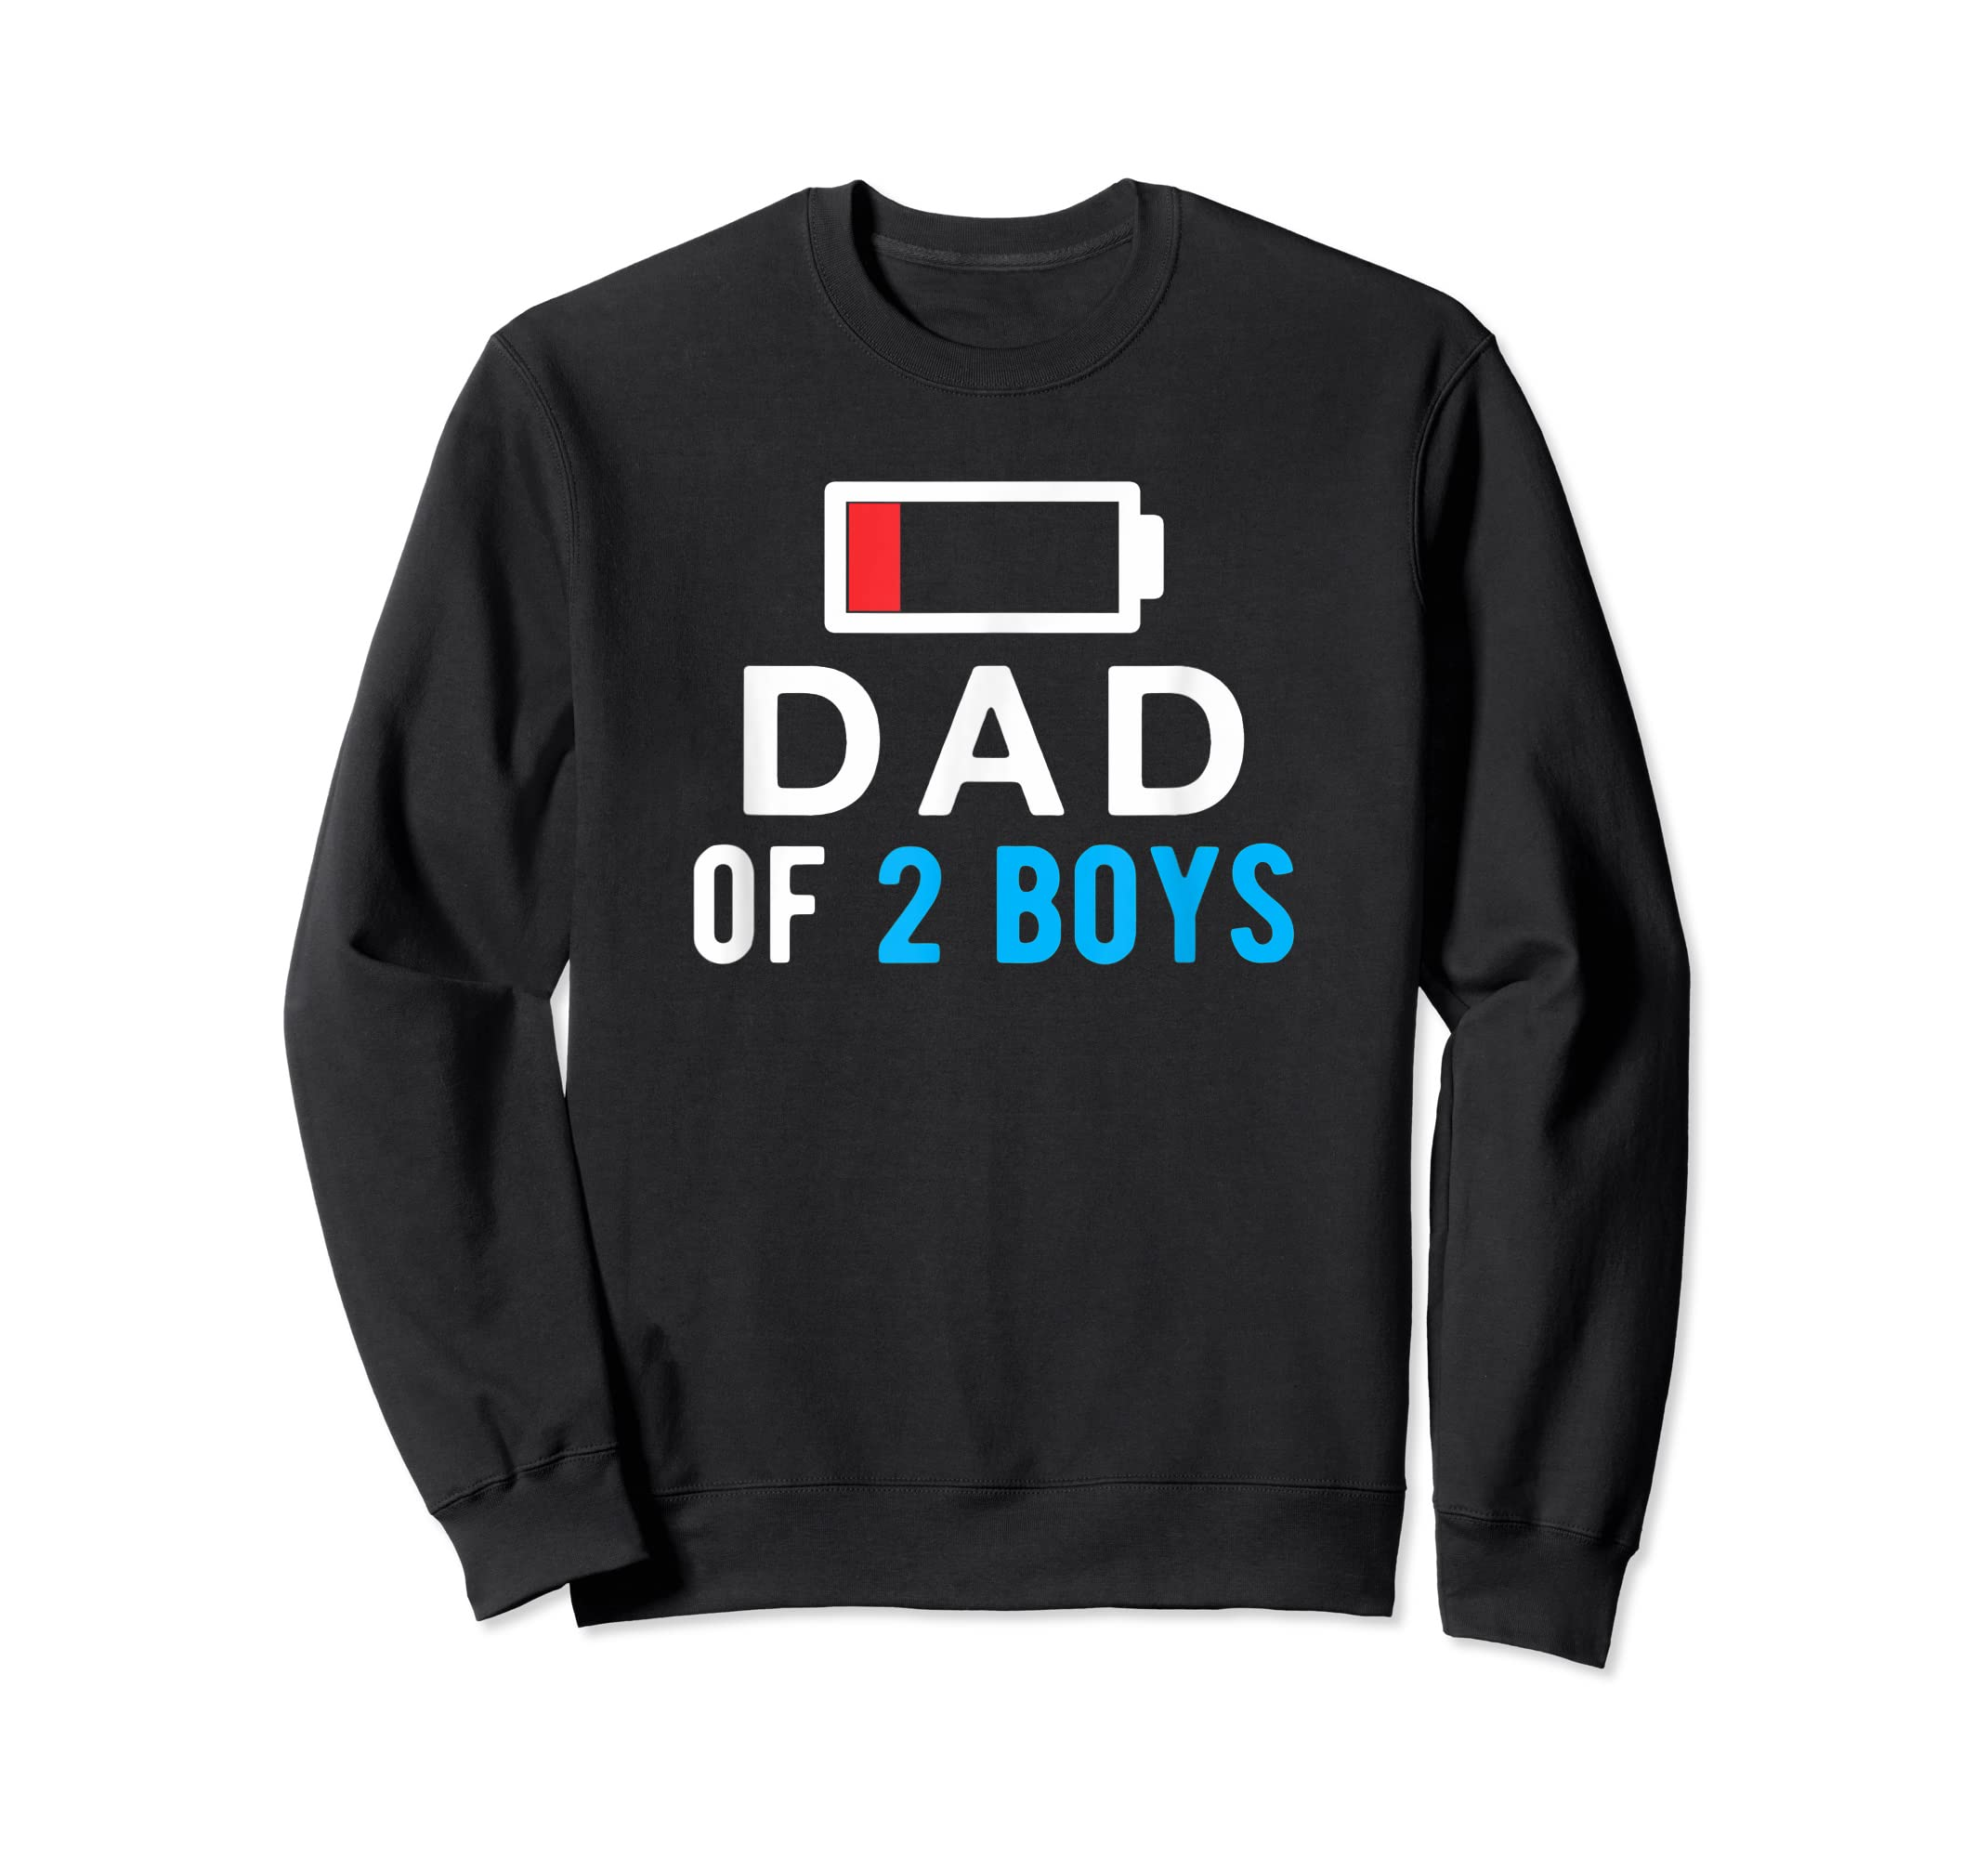 Funny Father's Day Shirt - Dad of 2 Boys Shirt Gift Idea-Sweatshirt-Black